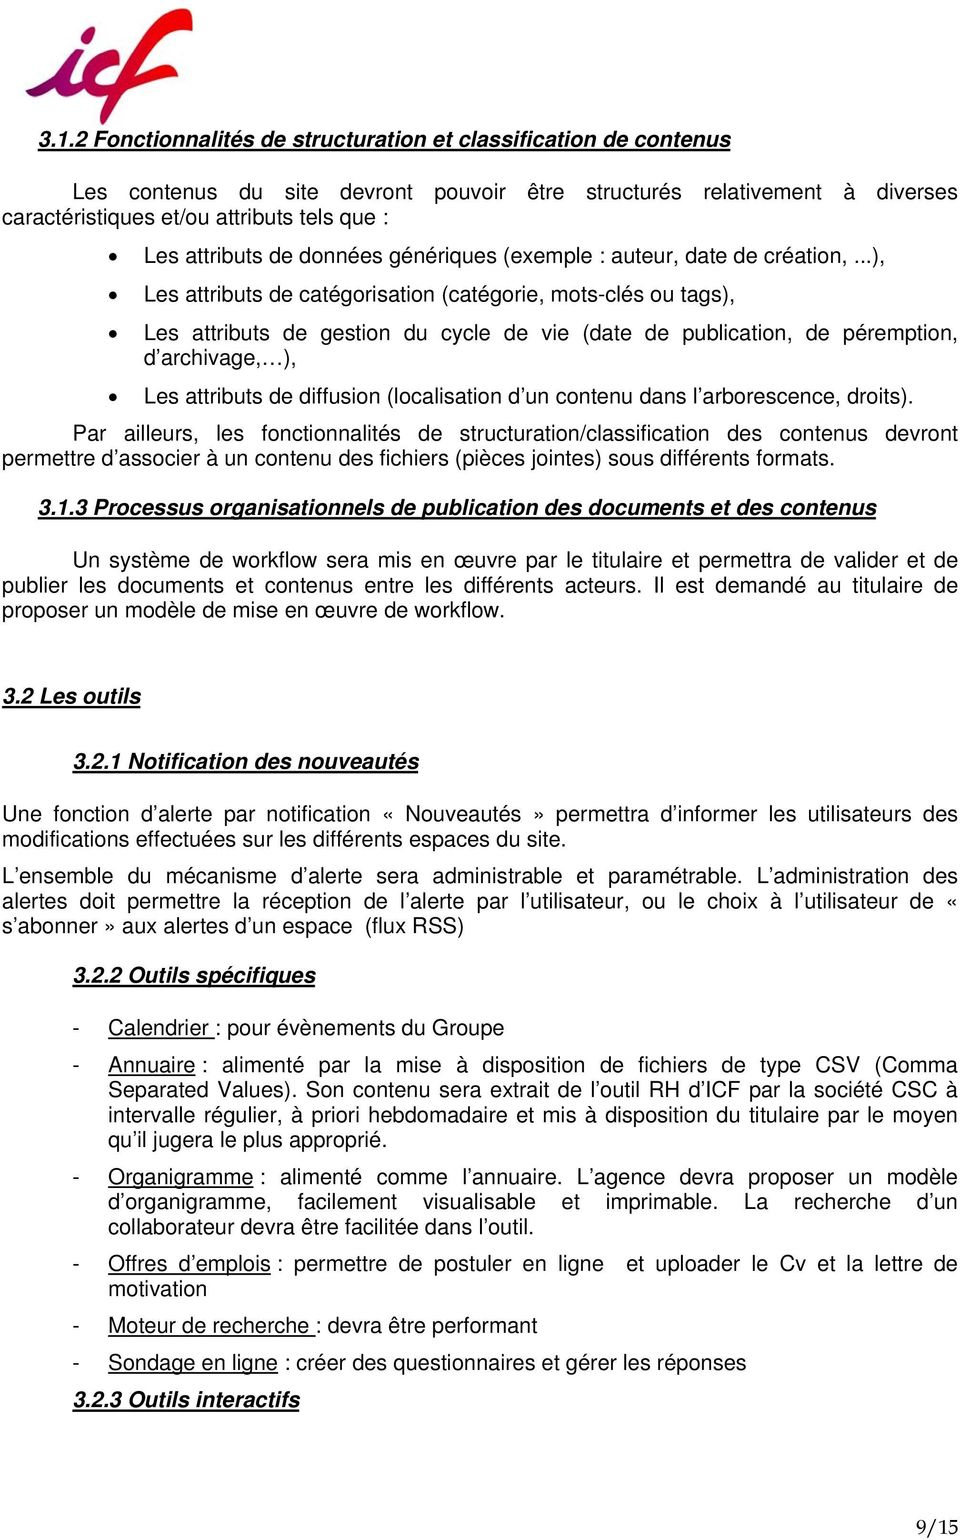 ..), Les attributs de catégorisation (catégorie, mots-clés ou tags), Les attributs de gestion du cycle de vie (date de publication, de péremption, d archivage, ), Les attributs de diffusion